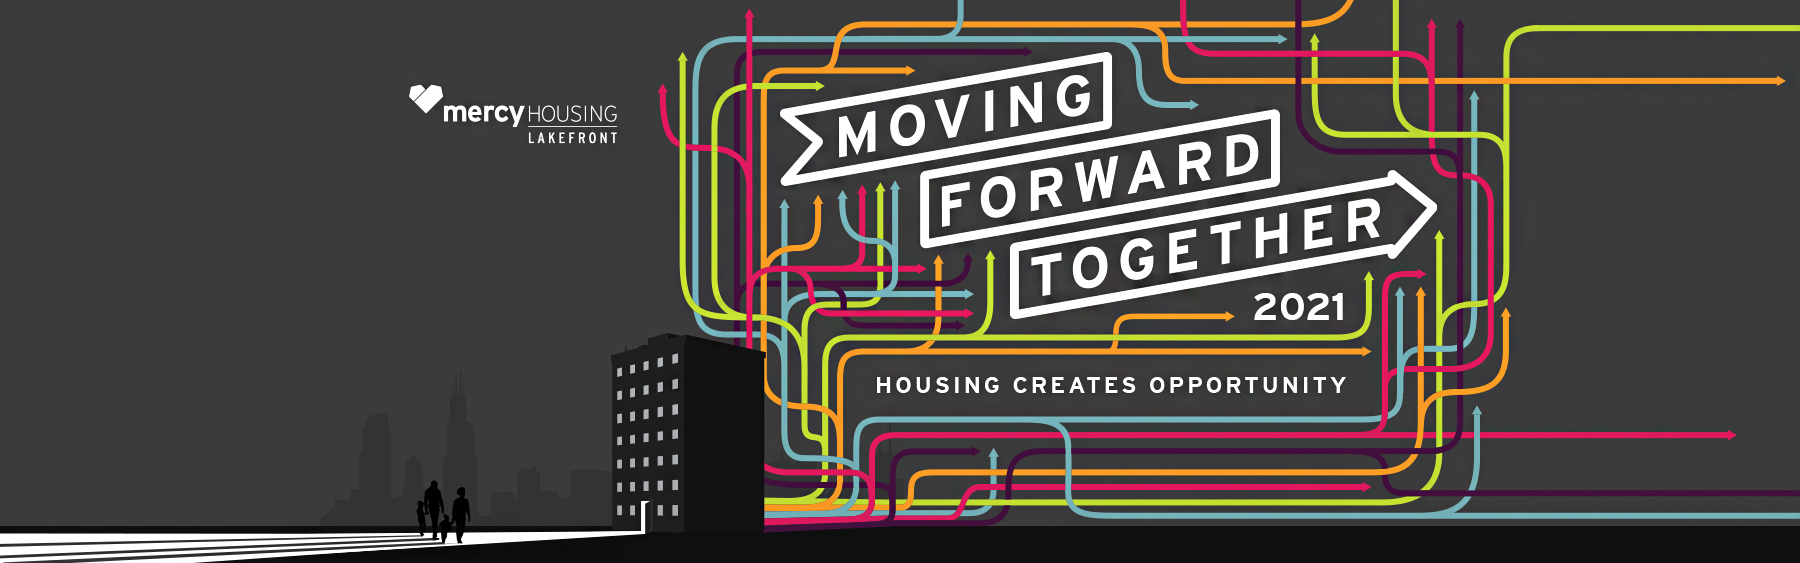 Major Jenkins Apartments Honored at Mercy Housing's Moving Forward Together 2021